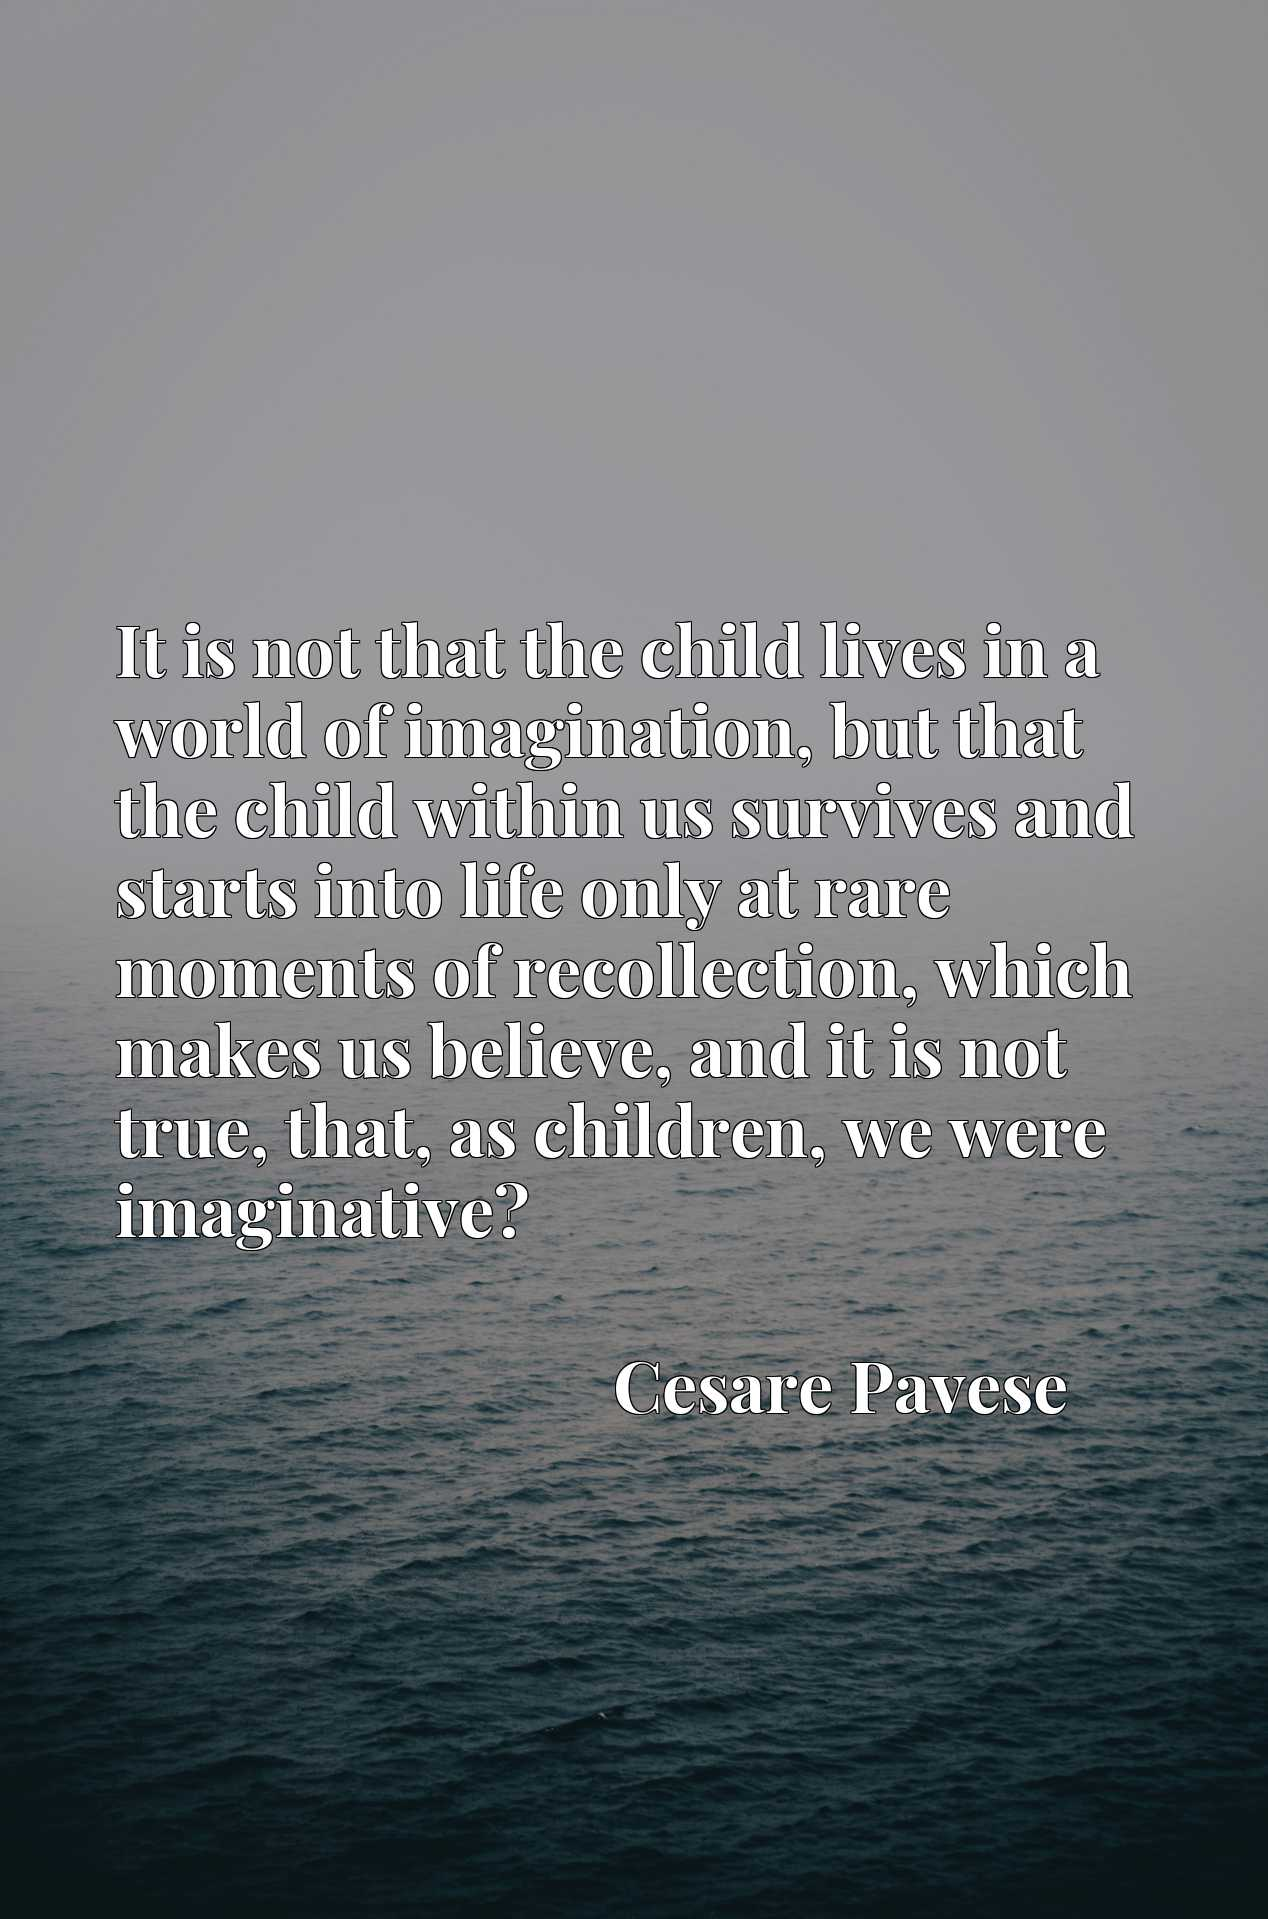 Quote Picture :It is not that the child lives in a world of imagination, but that the child within us survives and starts into life only at rare moments of recollection, which makes us believe, and it is not true, that, as children, we were imaginative?